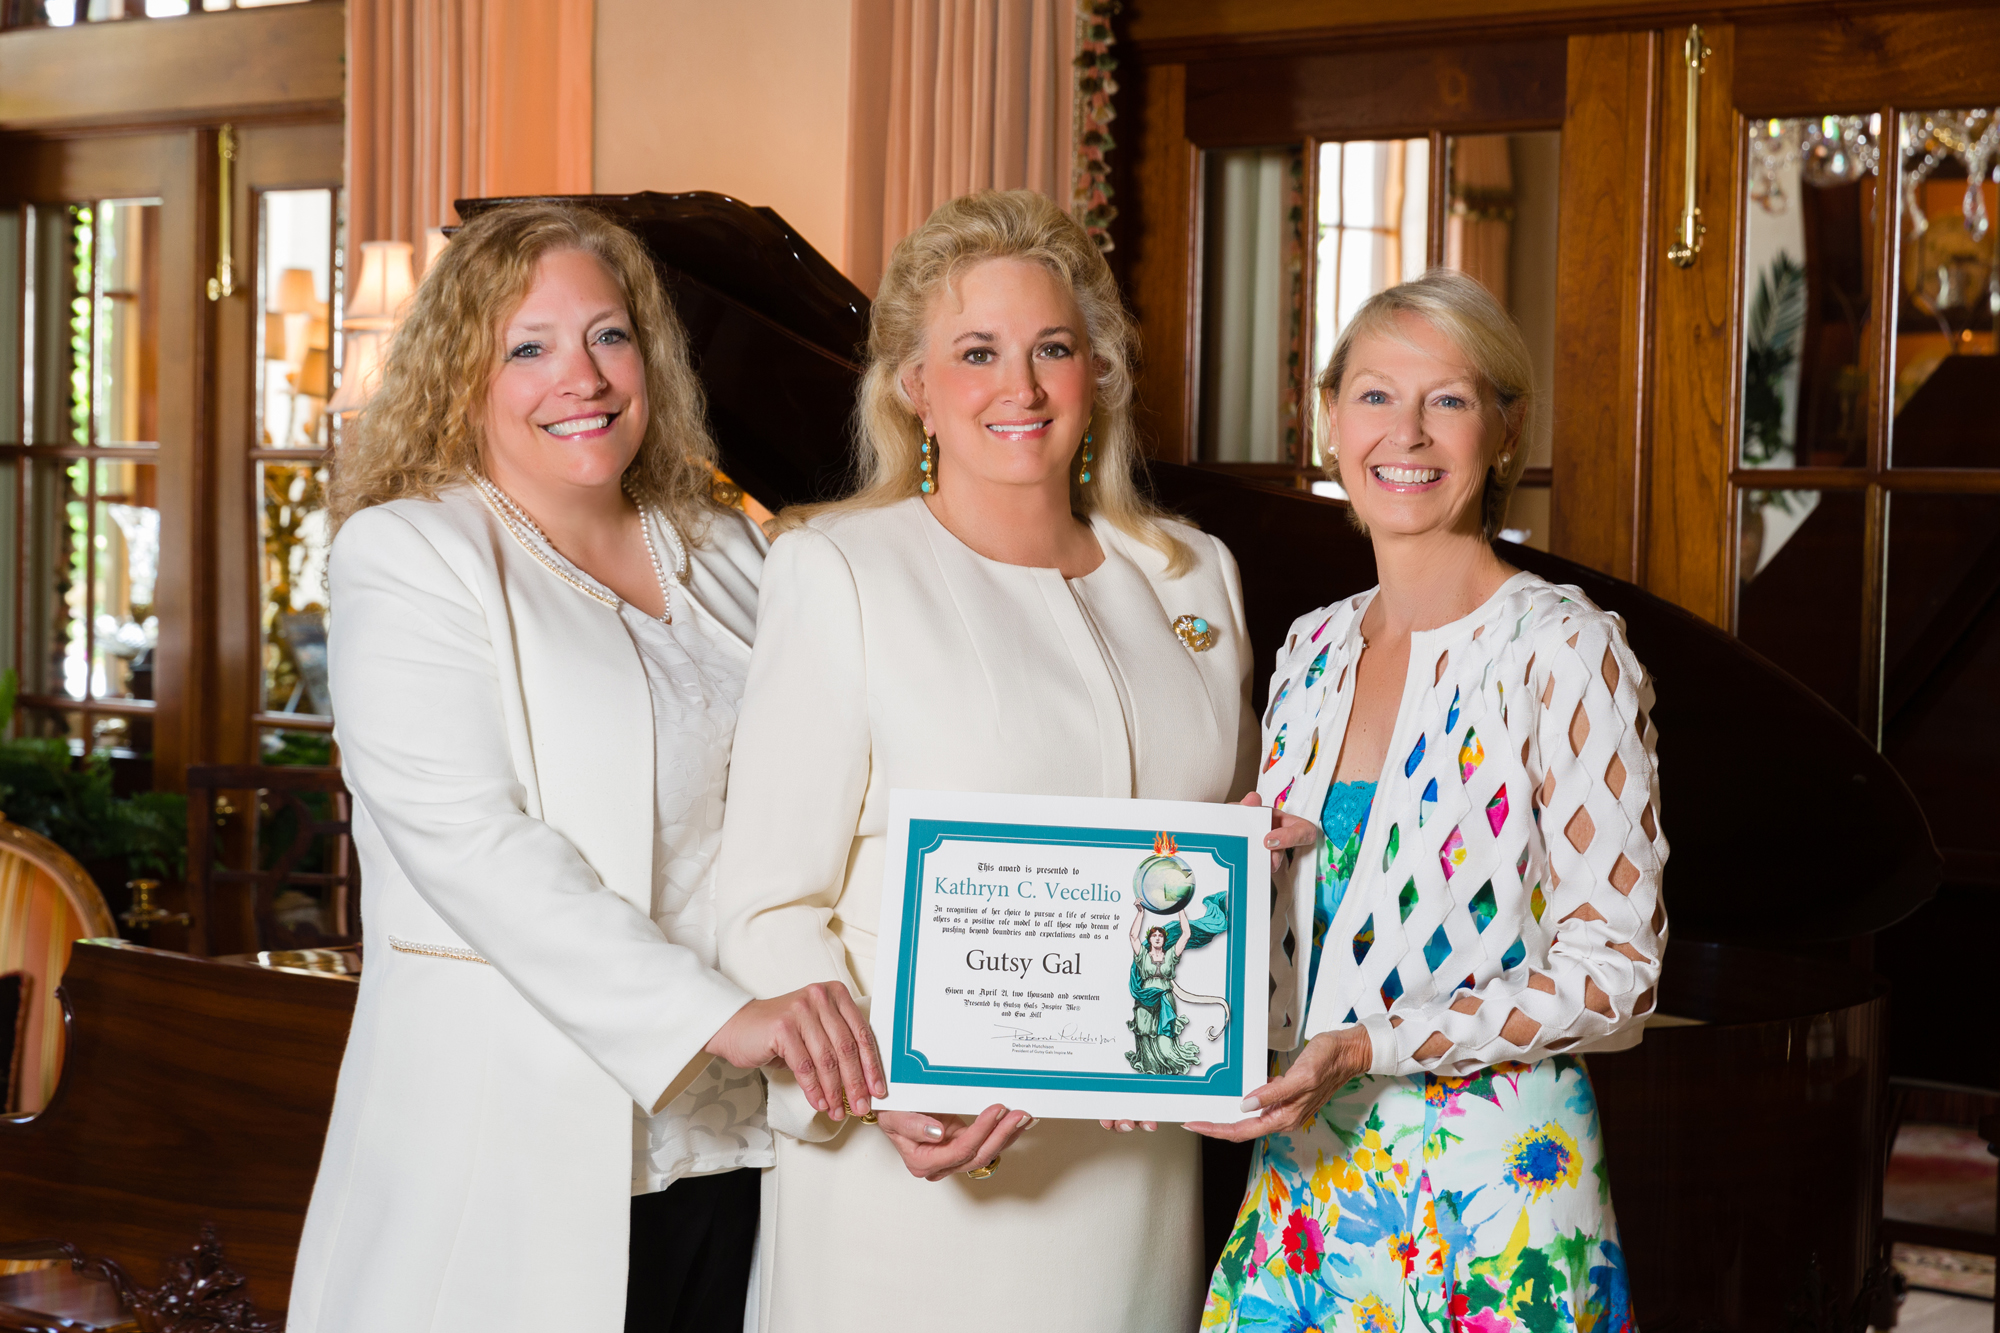 Past Award Honoree, Eva Hill, 2017 Charity Award Winner, Kathryn Vecellio and Gutsy Gal Award Founder, Deborah Hutchison